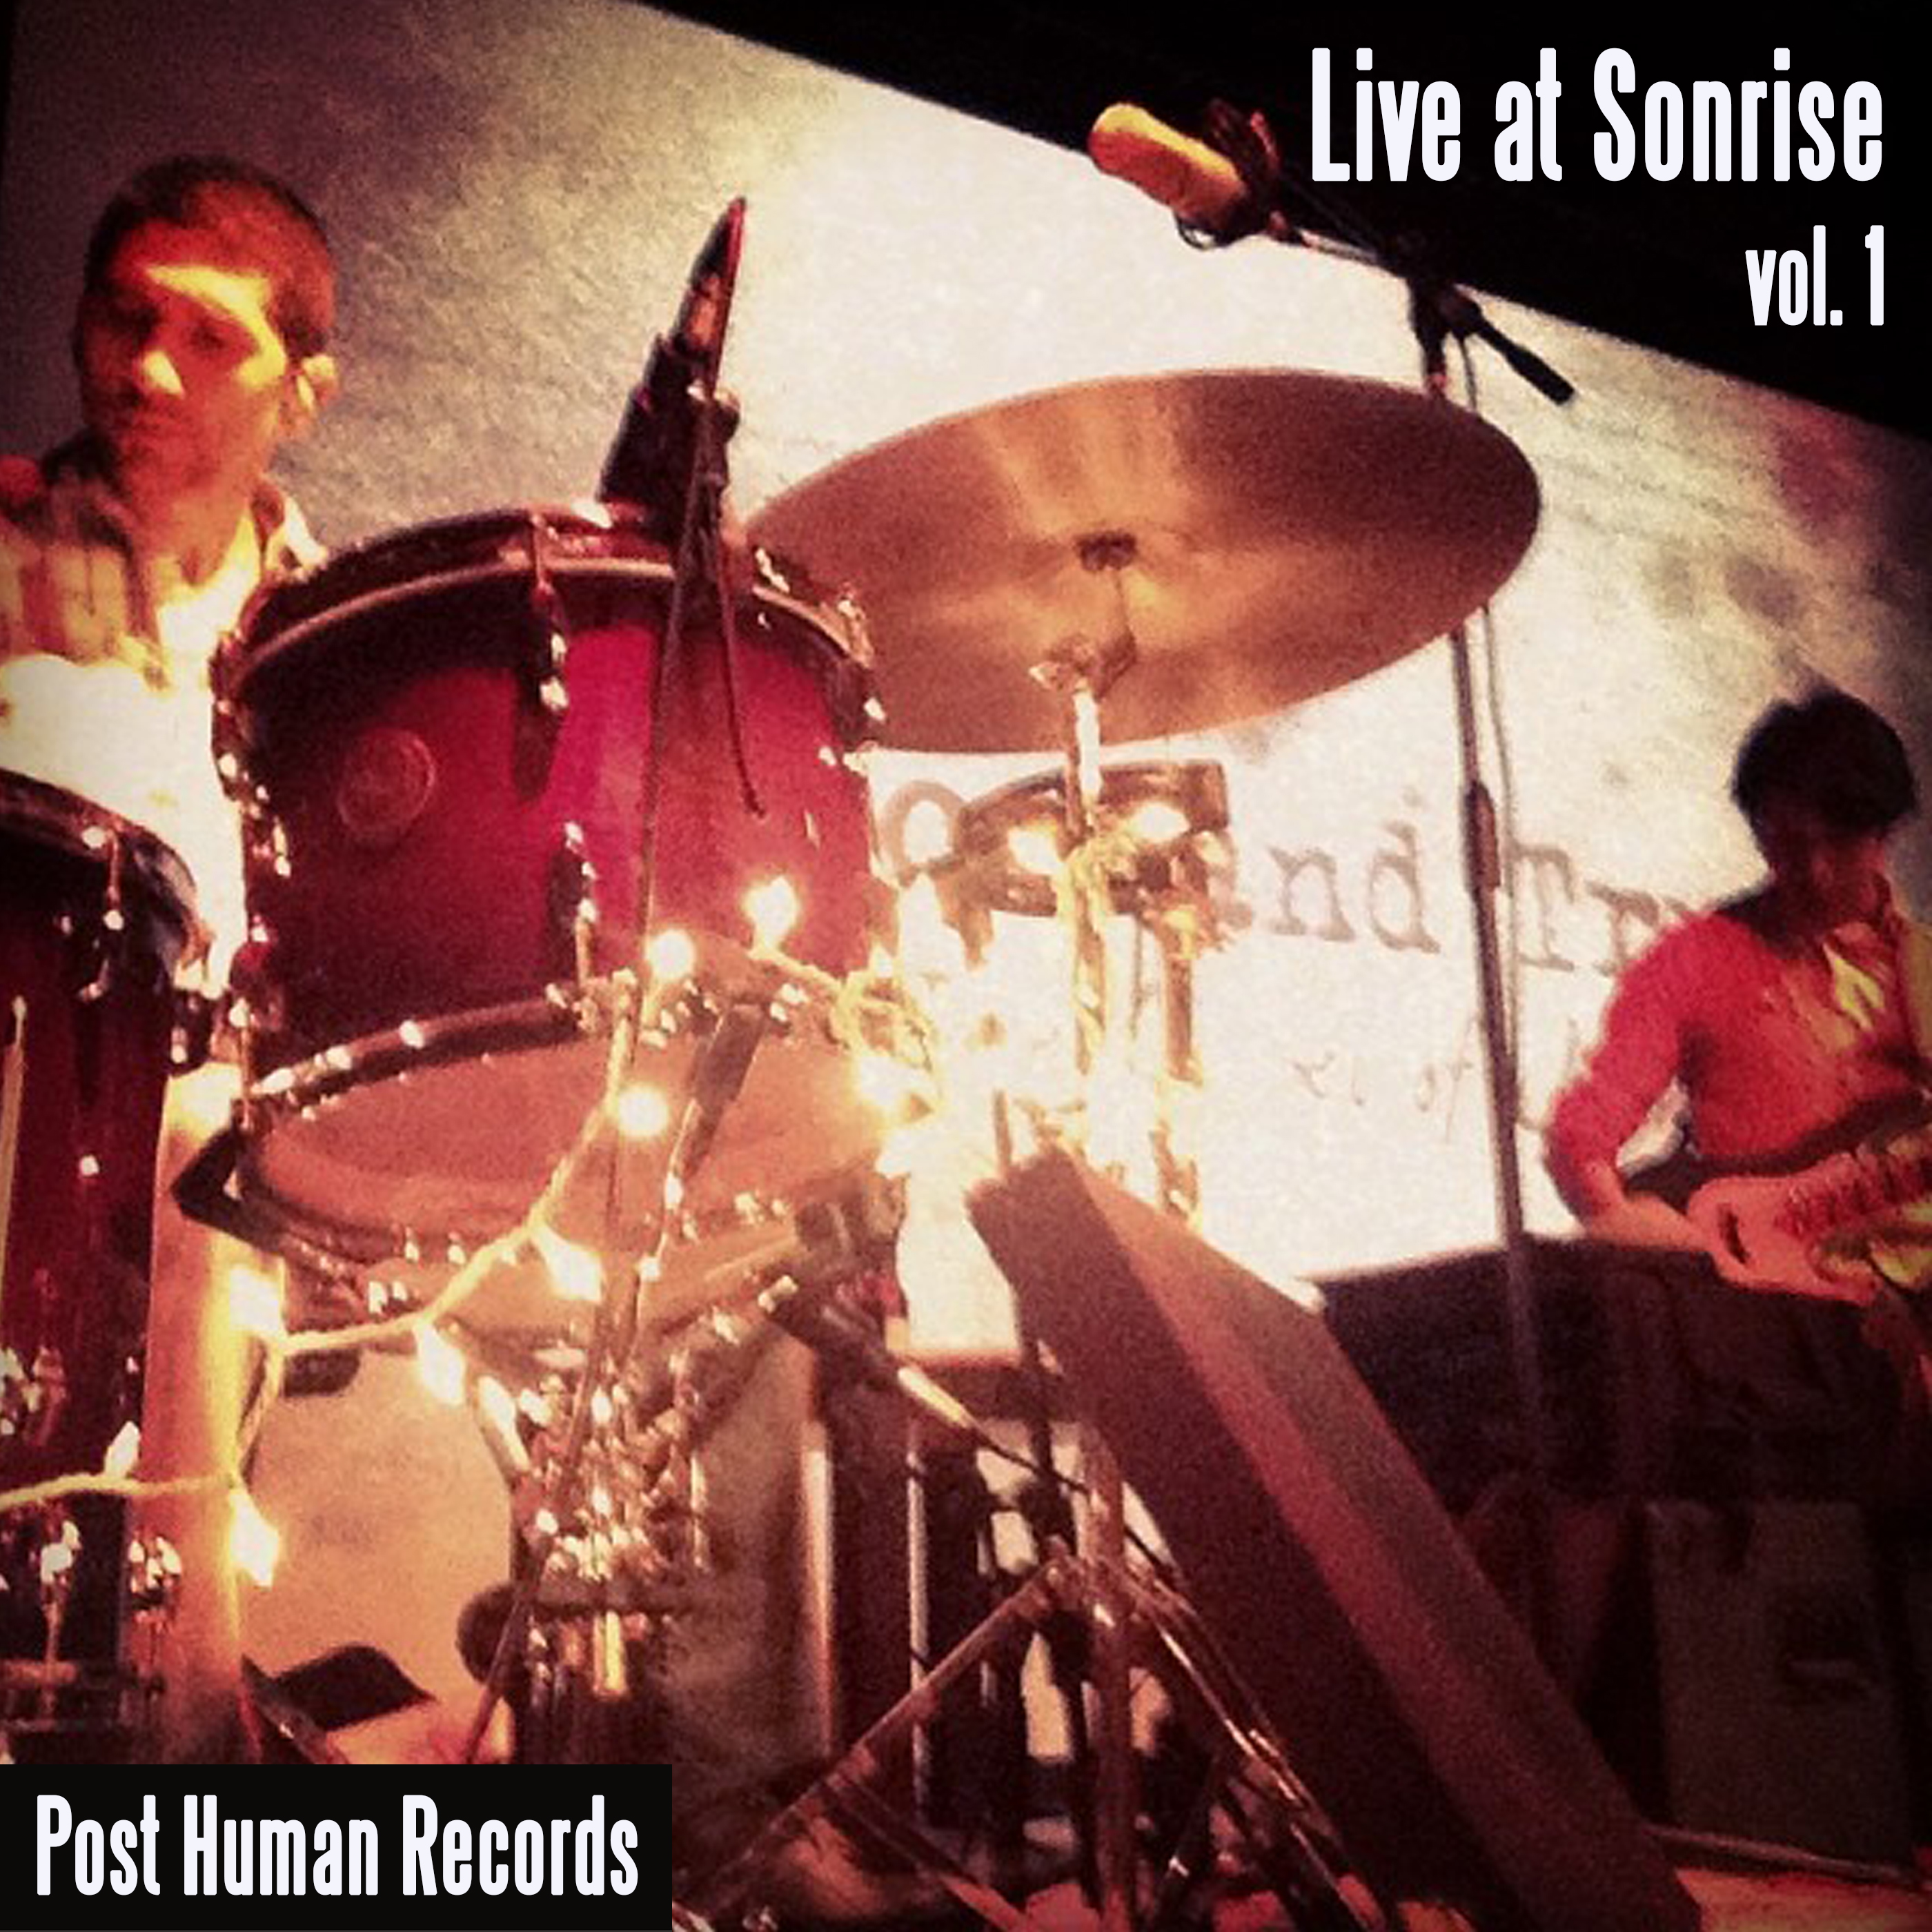 Live at Sonrise vol. 1 by Post Human Records